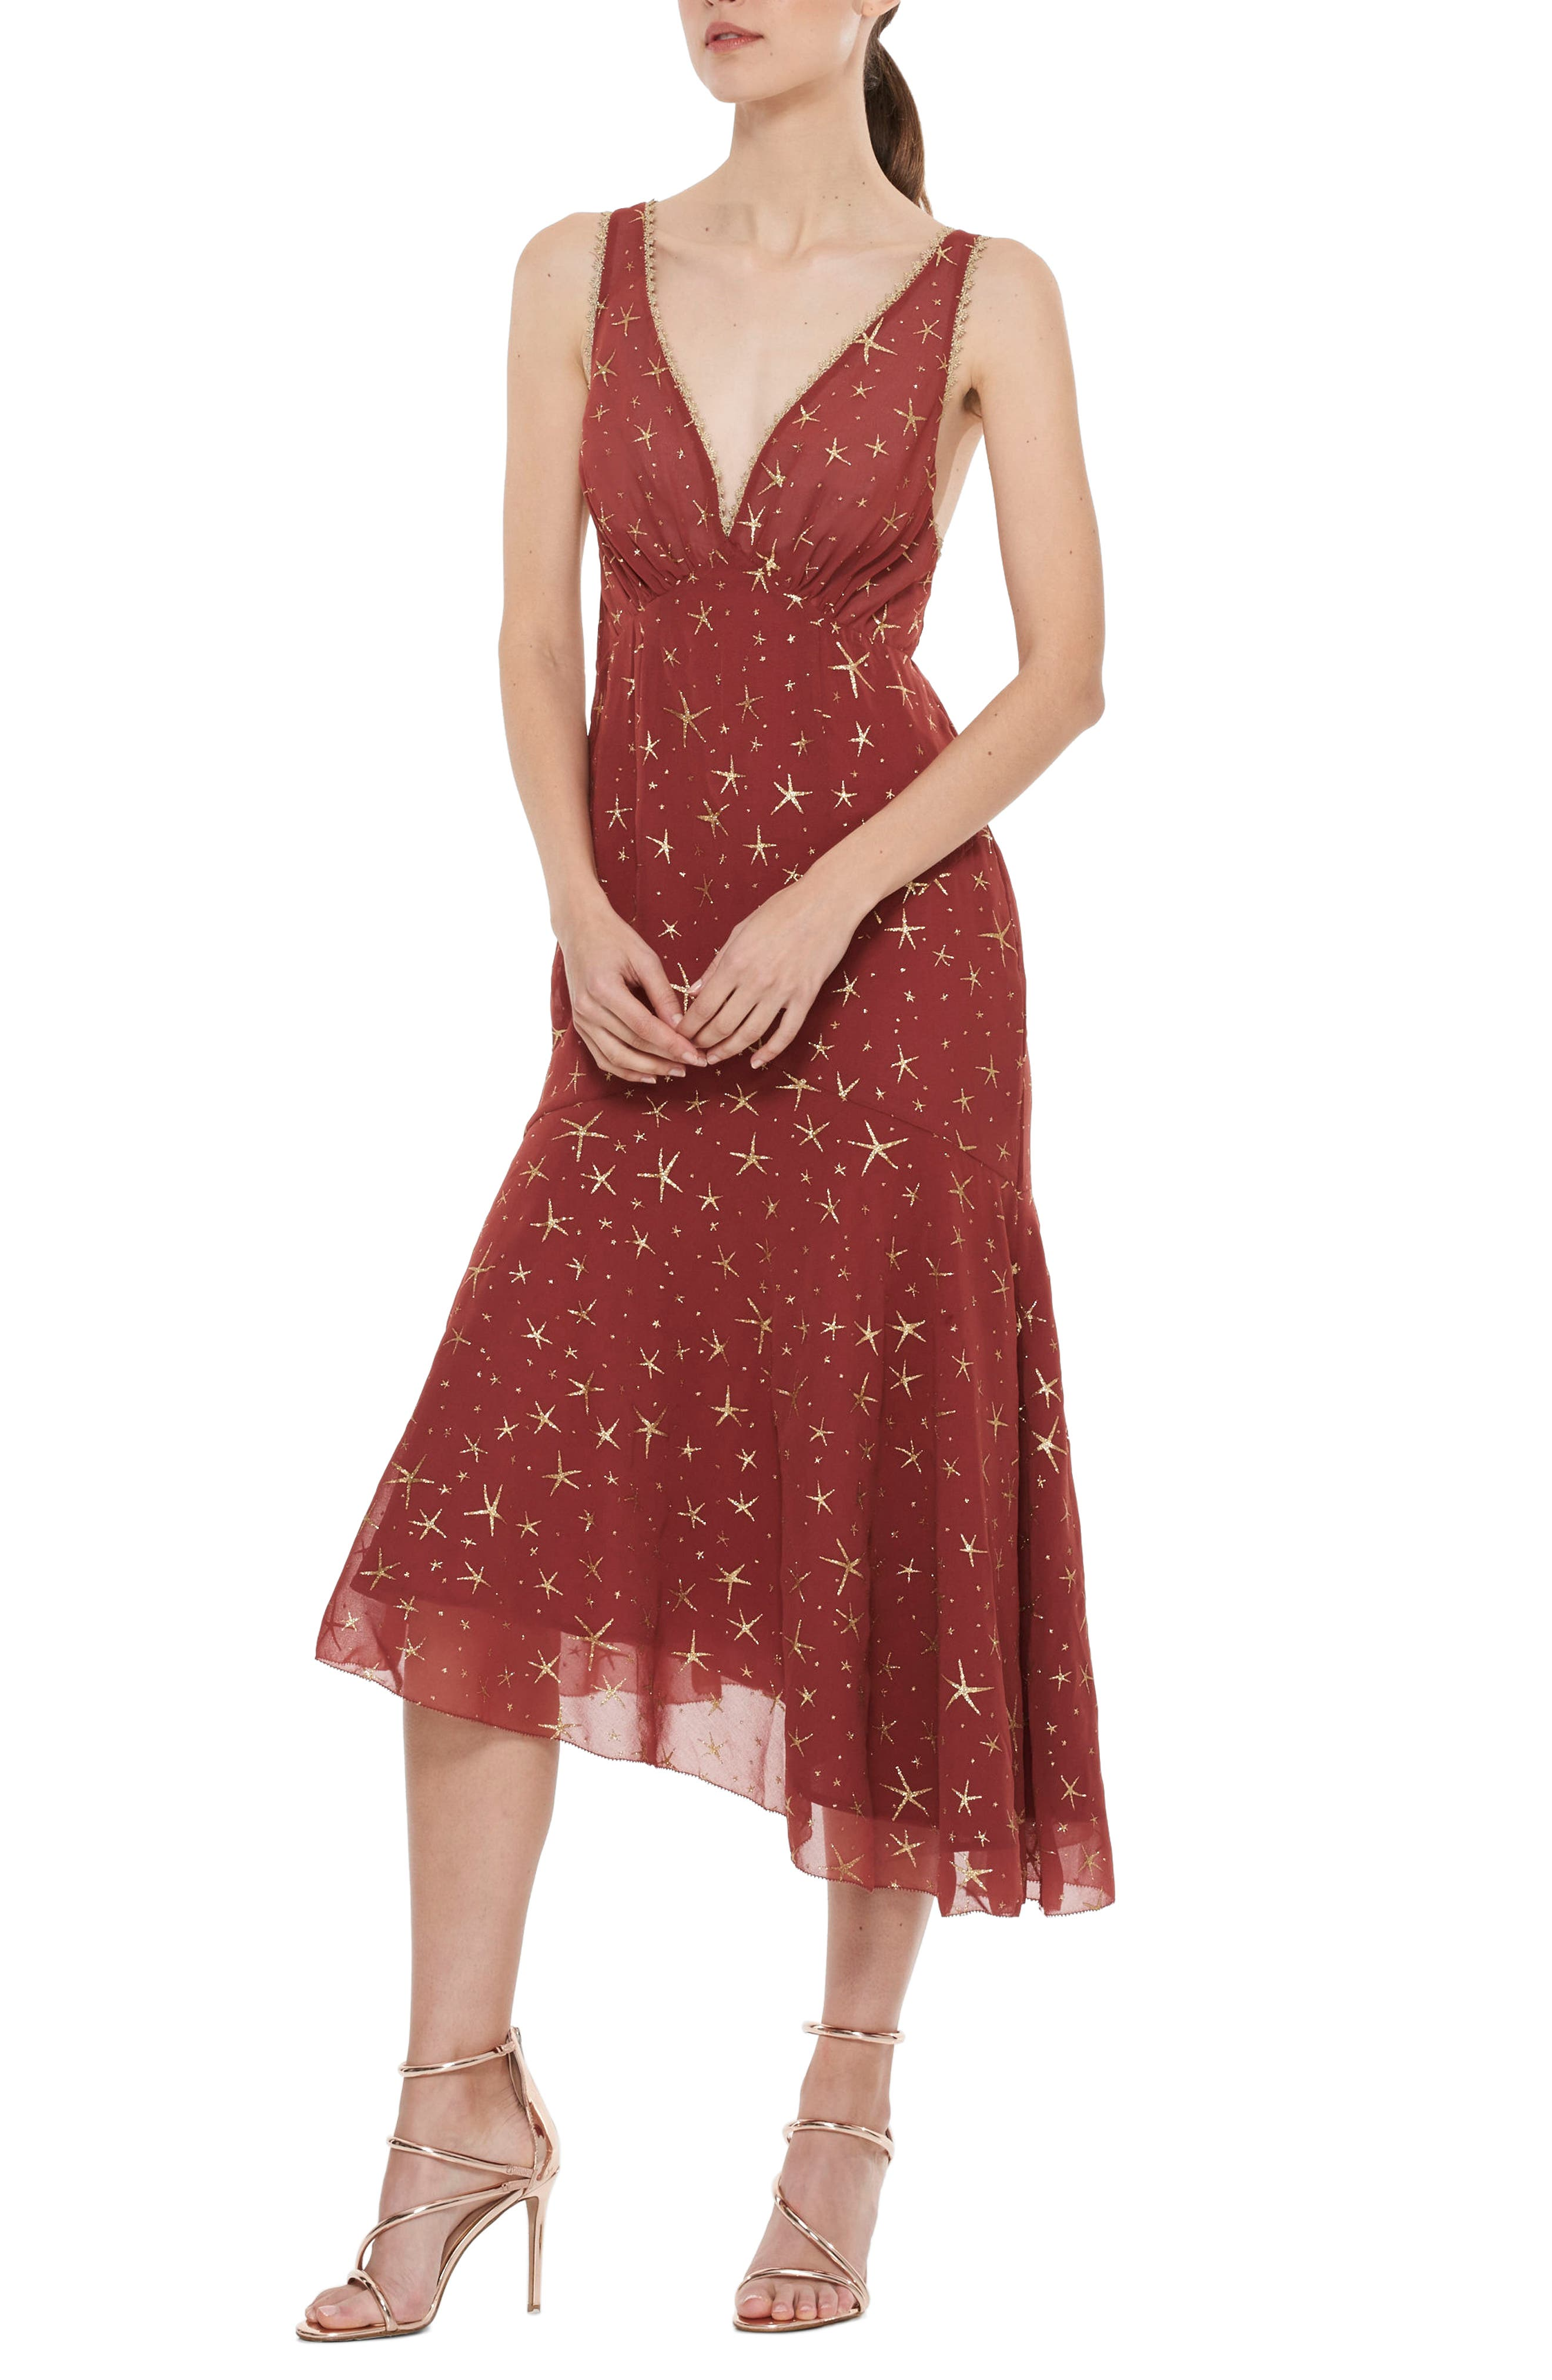 Stay Together Asymmetric Midi Dress,                         Main,                         color, Wine And Gold